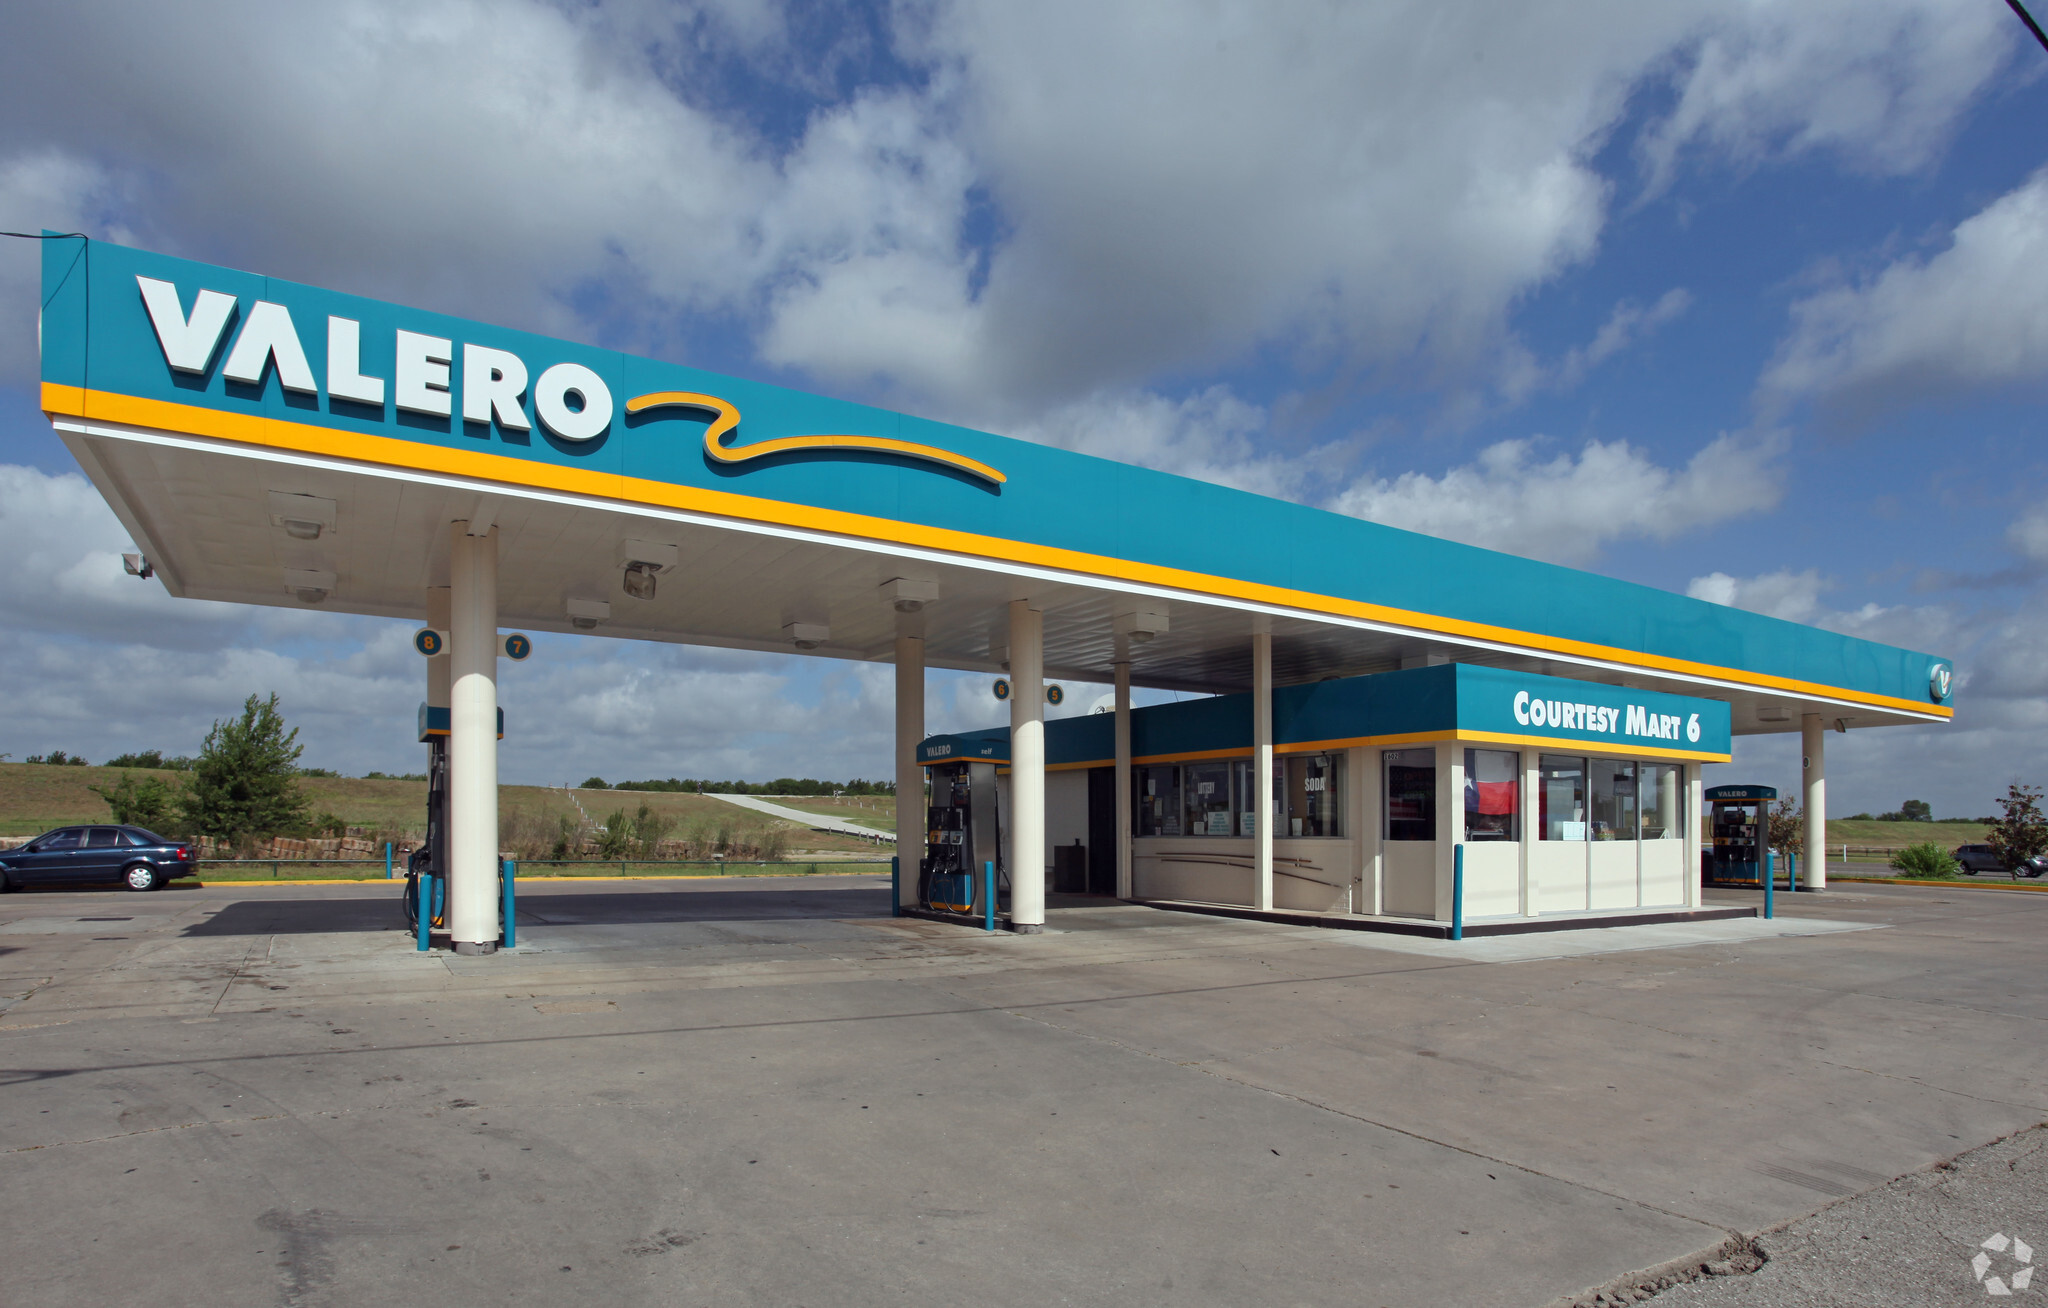 This Week in Demolition: The Most Dangerous Gas Station in the World